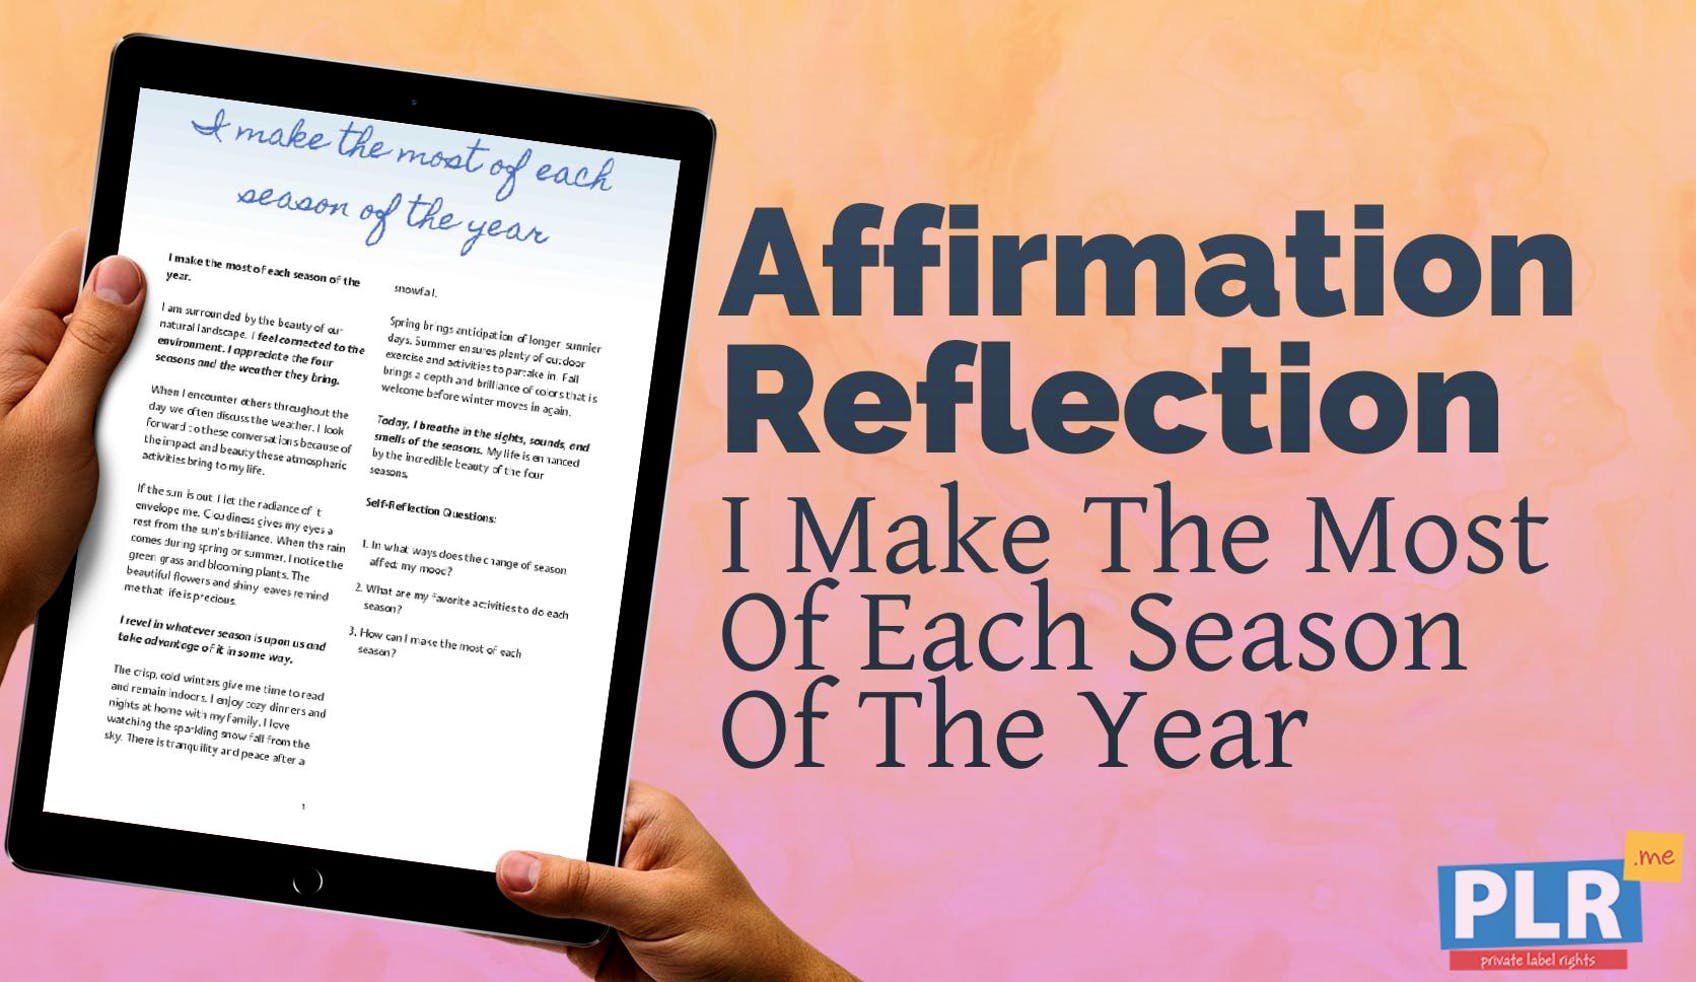 Plr Affirmation Reflections I Make The Most Of Each Season Of The